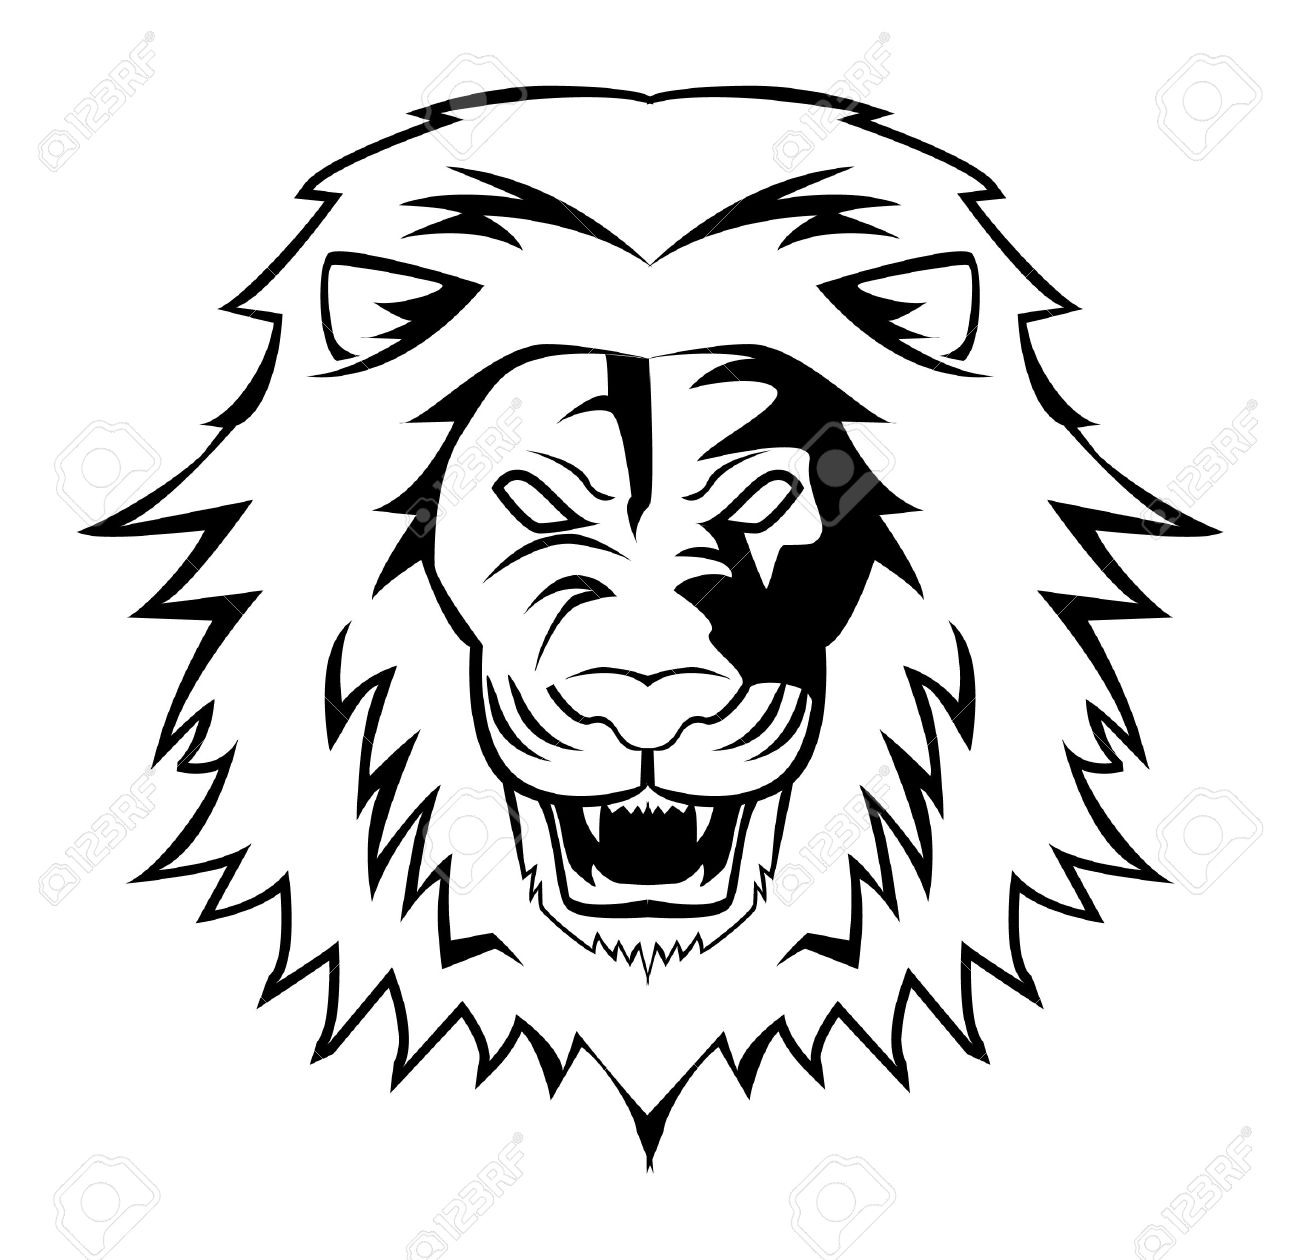 Lion Roar Drawing at GetDrawings com | Free for personal use